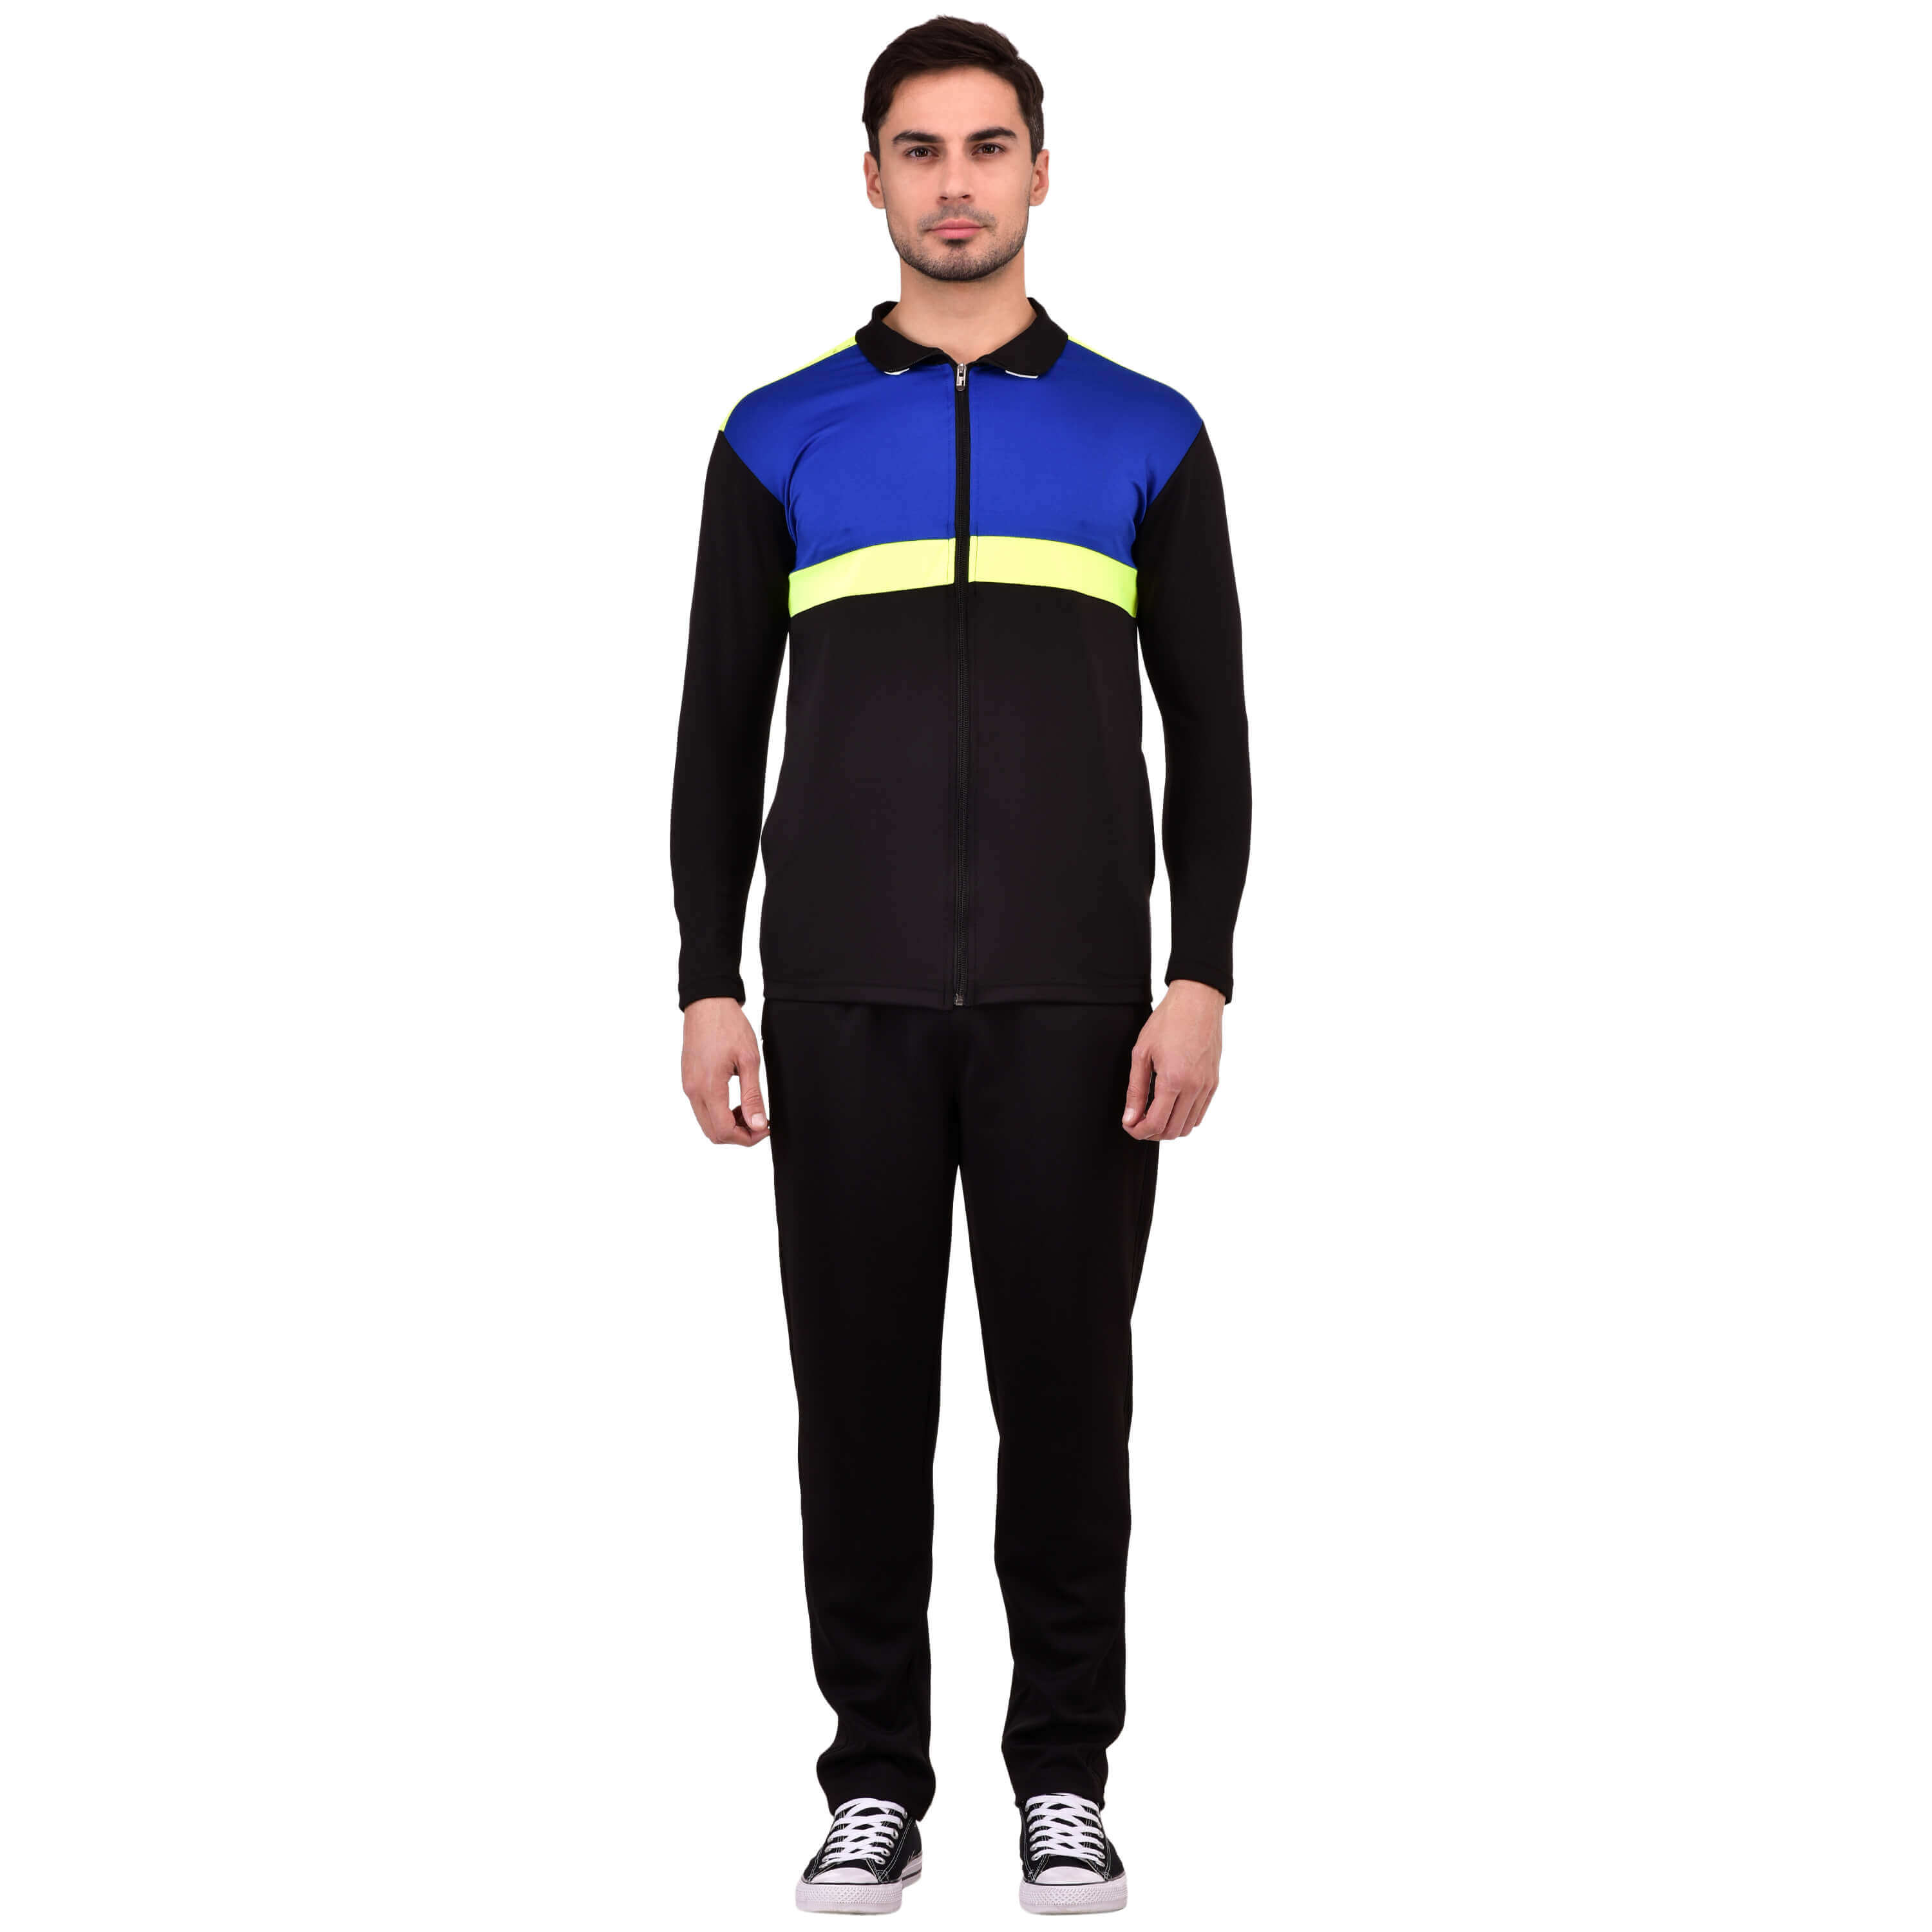 Mens Black Tracksuit Manufacturers in Peru